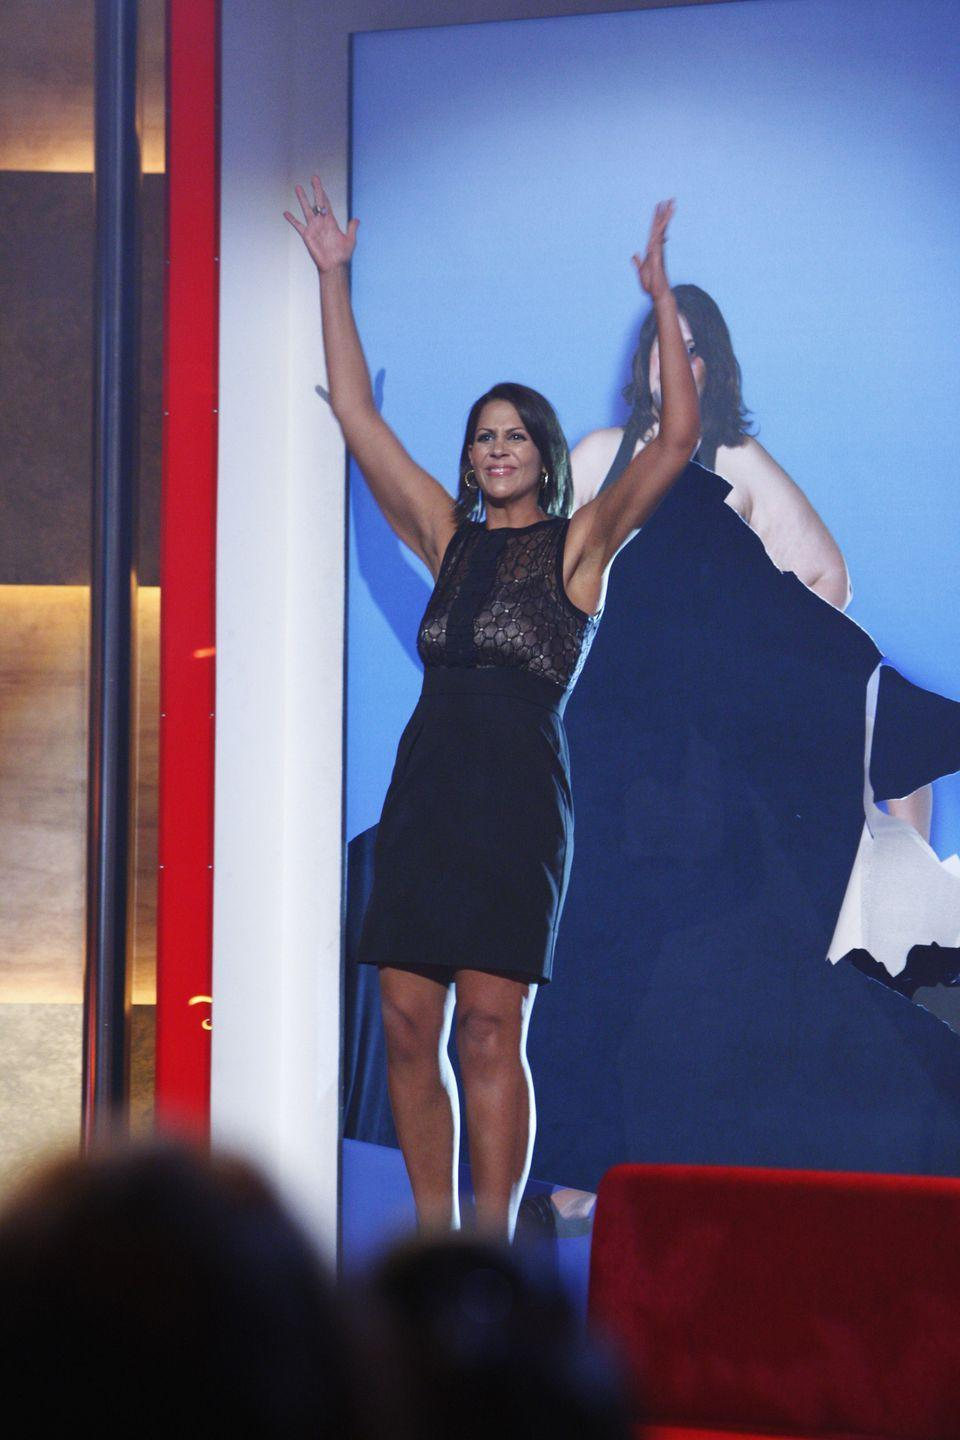 <p>Heba ended up losing a whopping 156 pounds. She didn't win the overall title, but she was named the Biggest Loser of the eliminated contestants and won $100,000.</p>